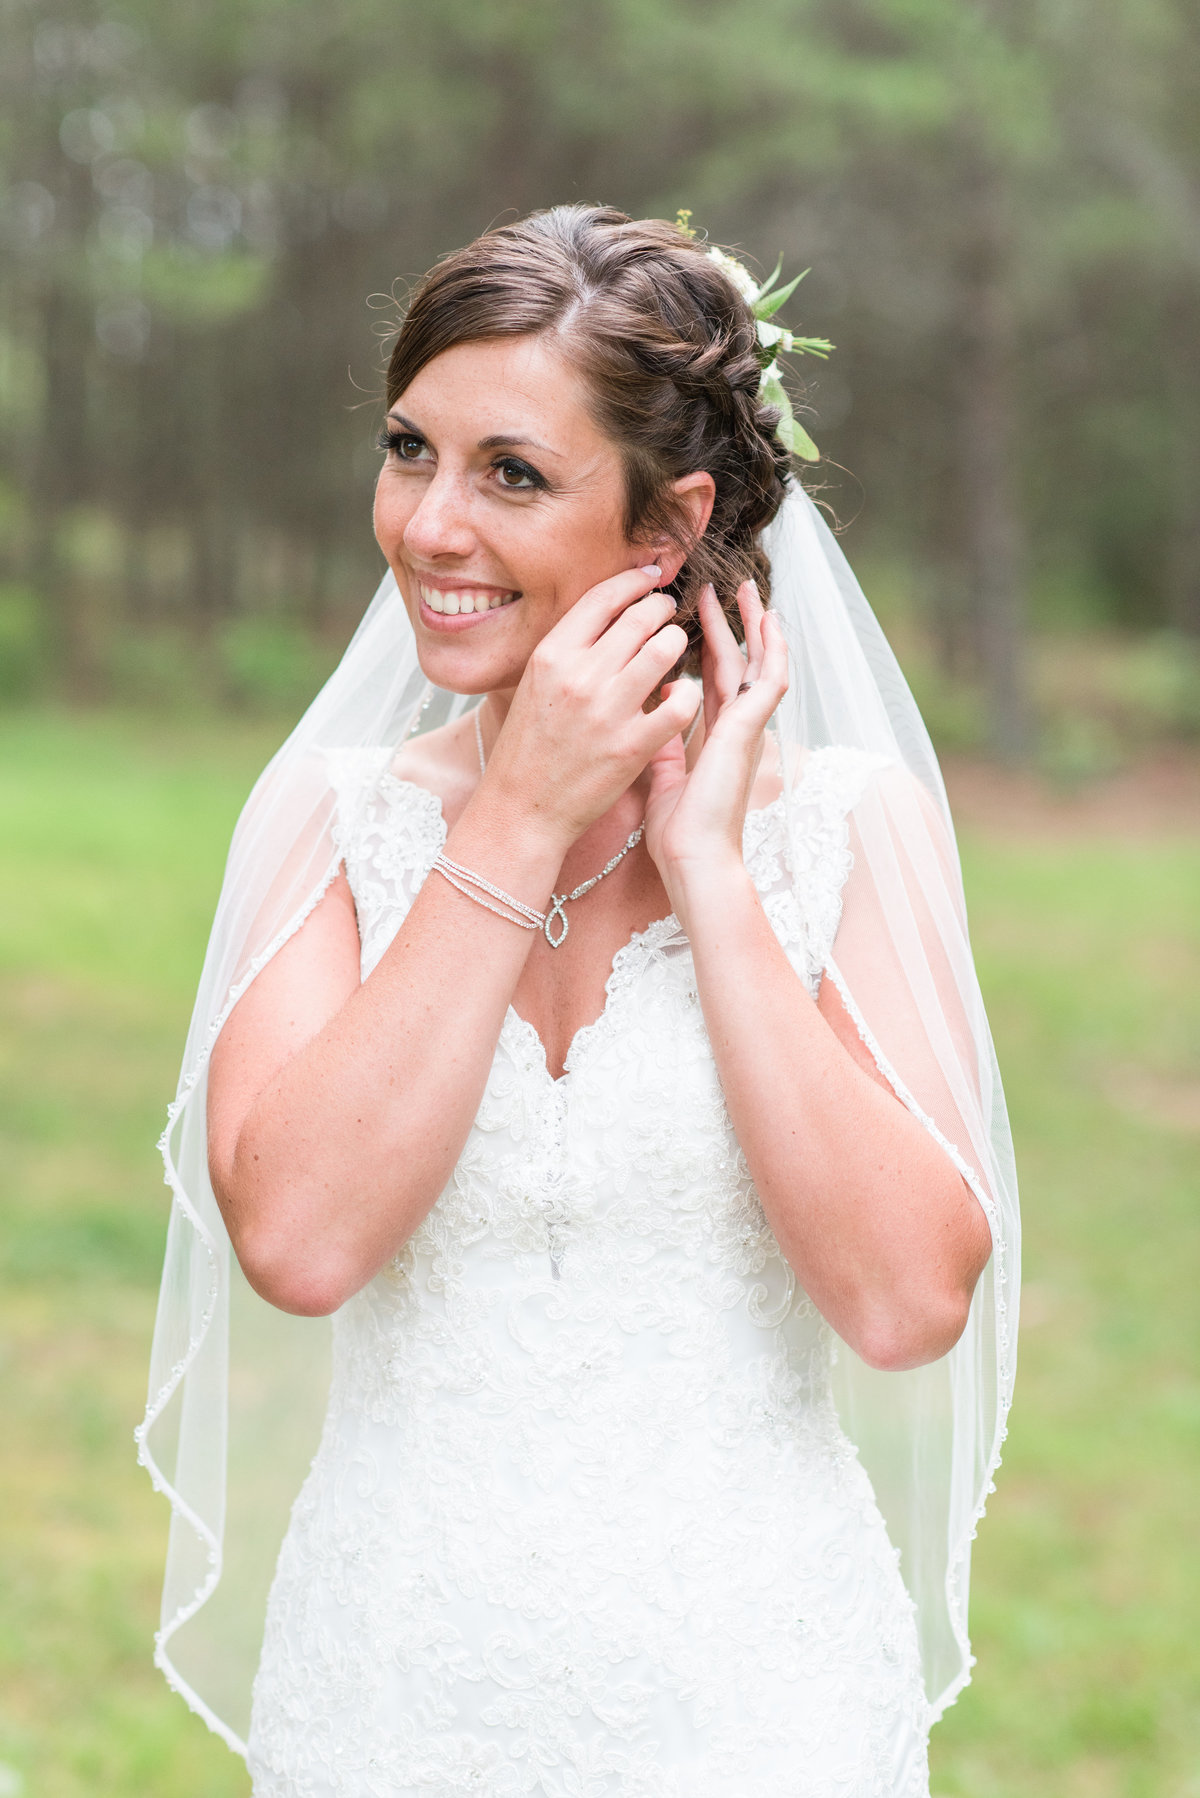 a bride wearing a laced thin strapped wedding dress fixing her earrings while looking off at Meadows at Walnut Cove